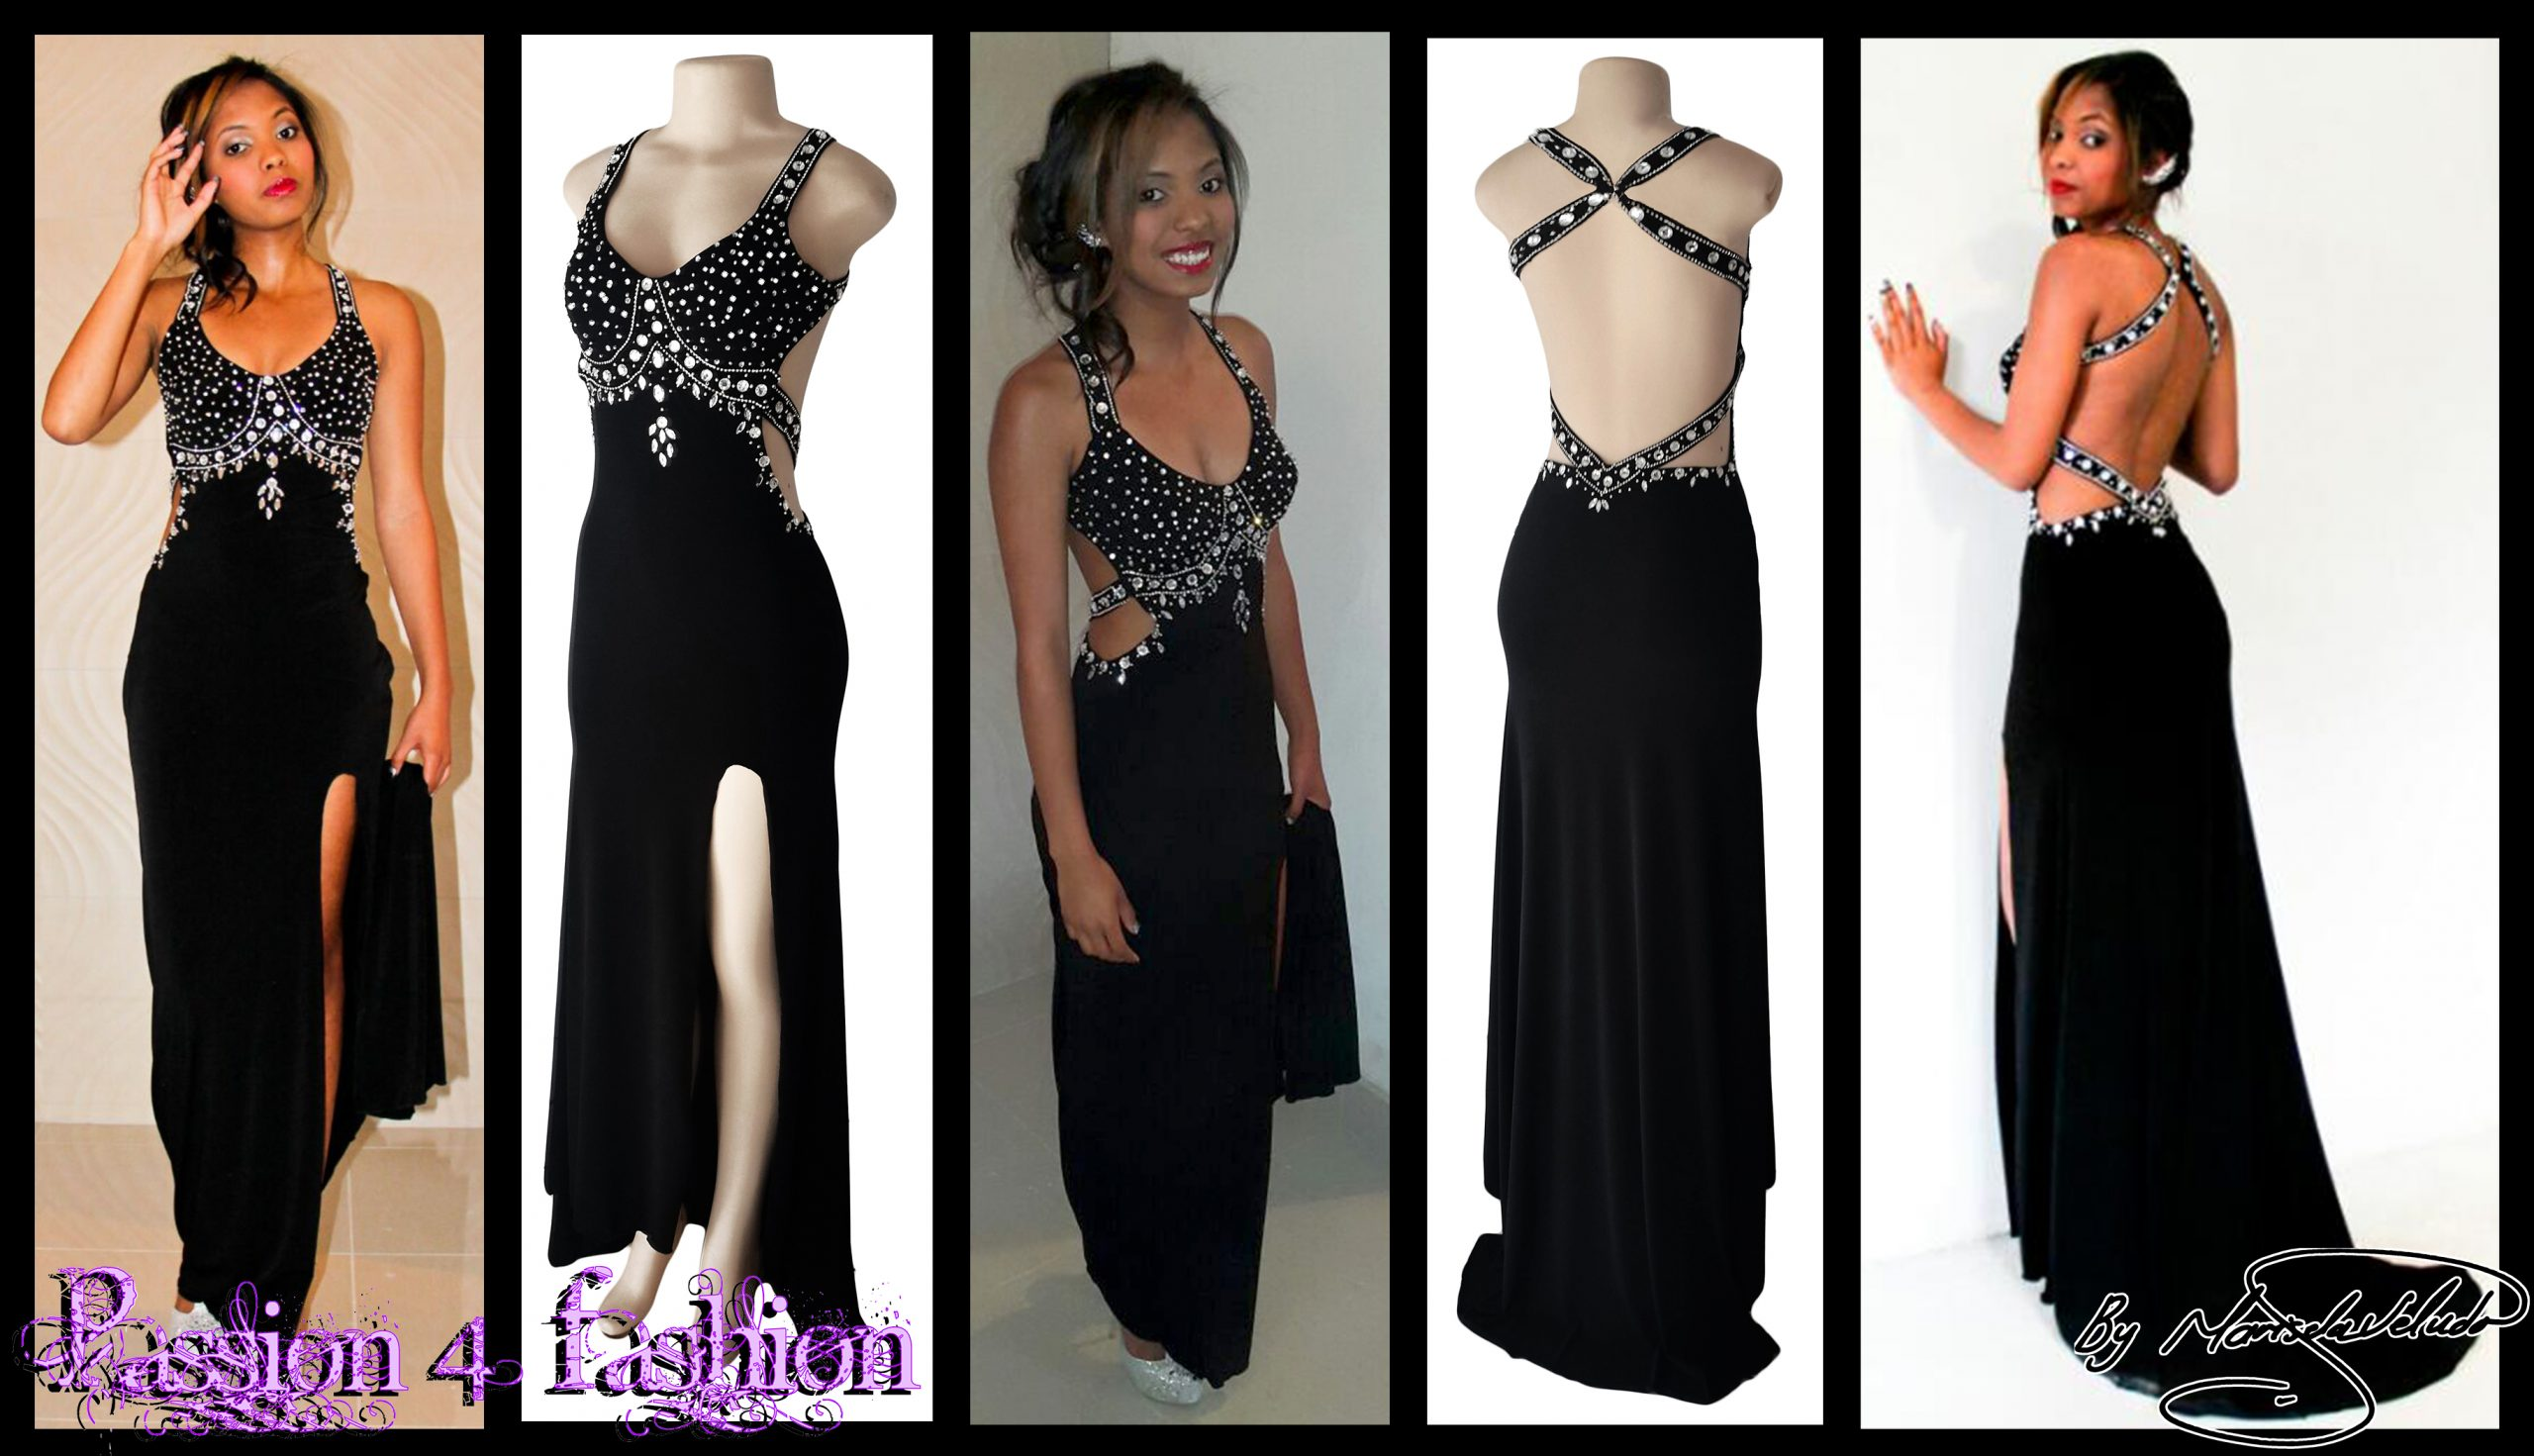 Black and silver prom dress with a low open back 8 black & silver prom dress with a low open back, a slit and train. Slightly open on the side of the tummy. Back straps and bodice detailed with silver beads and diamante